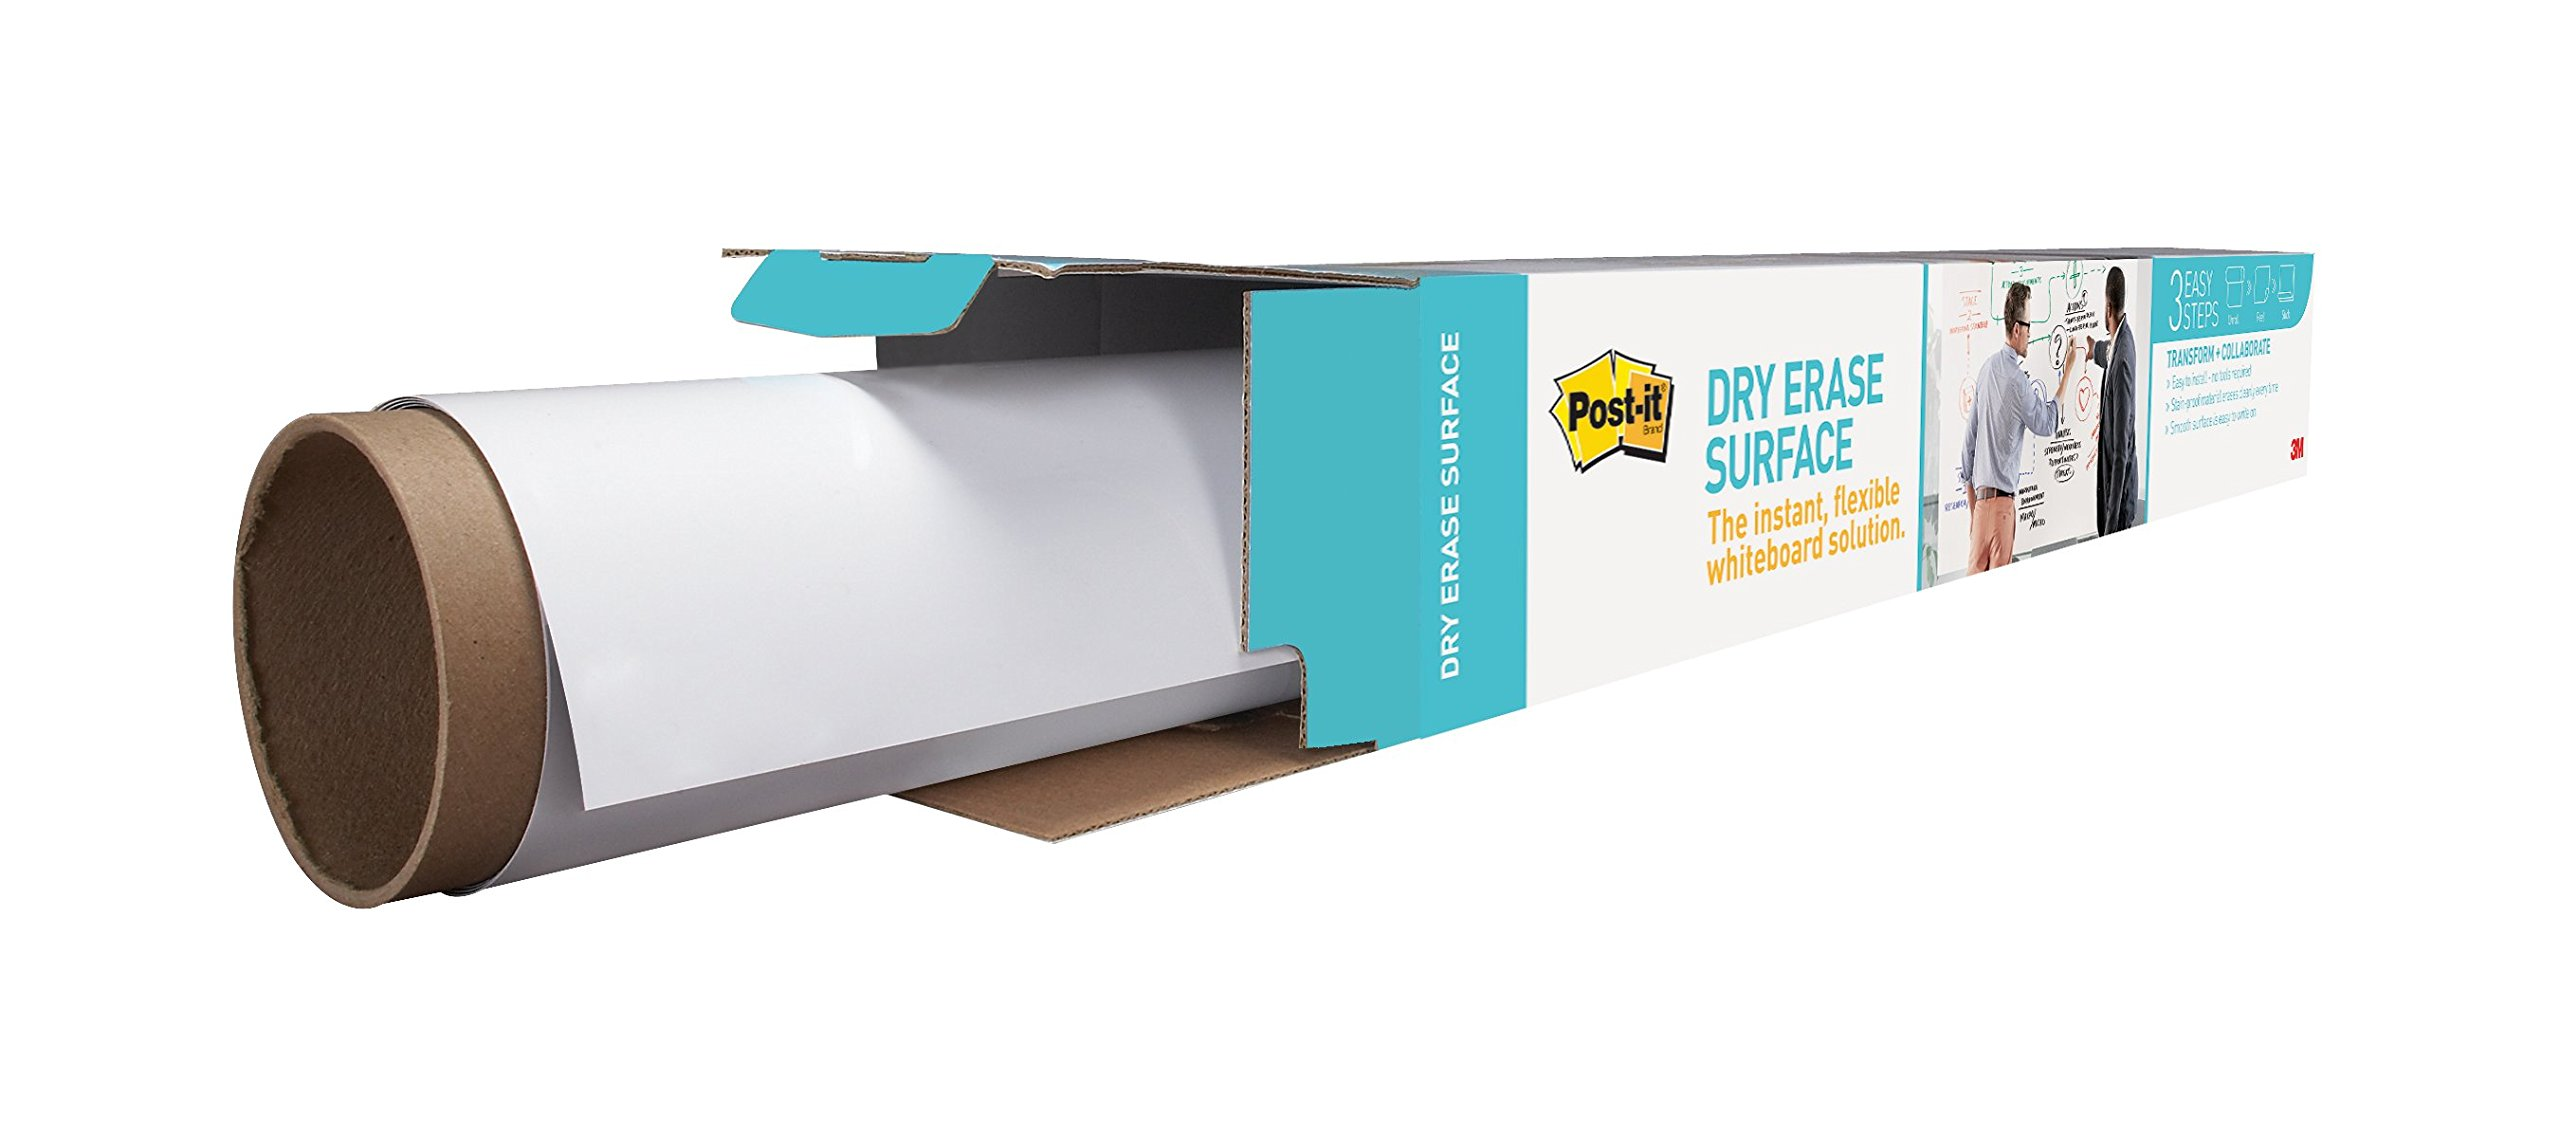 Post-it Dry Erase Surface (8 ft x 4 ft) - Great for Tables, Desks and Other Surfaces!